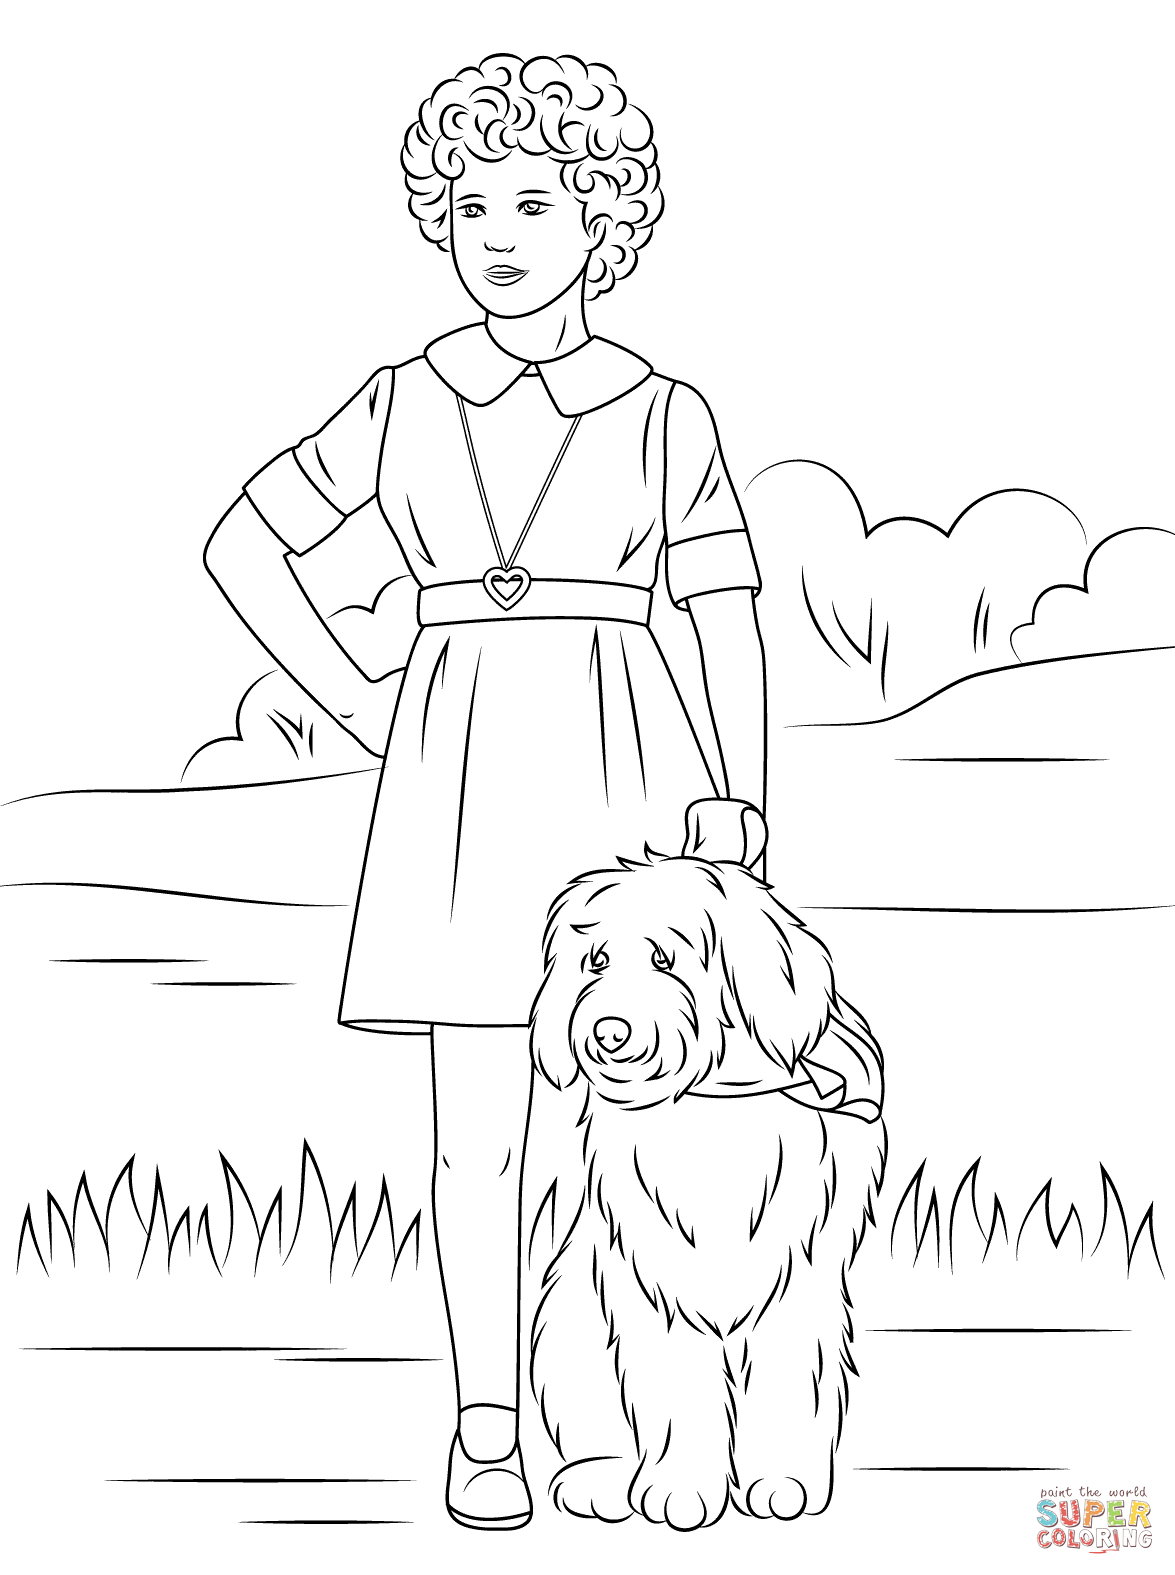 Orphan Annie With One Lung Coloring Page